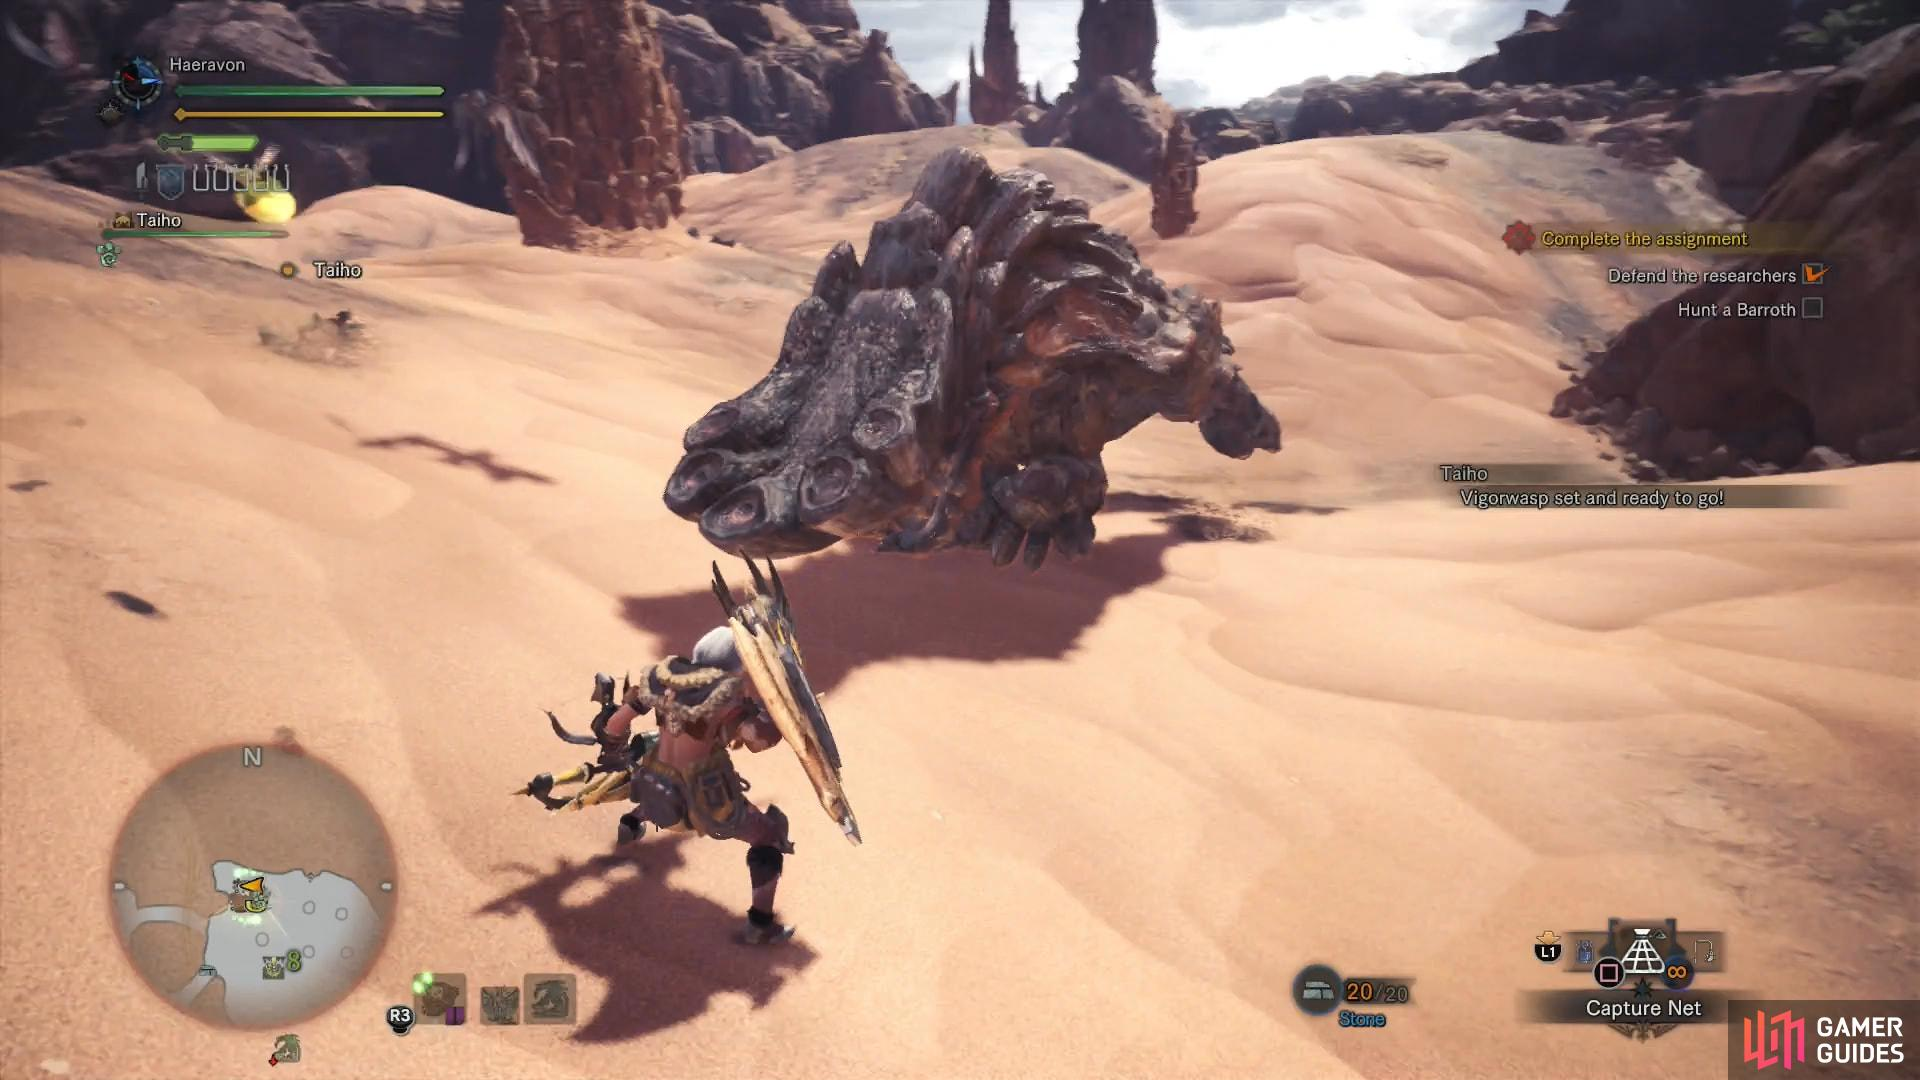 Despite its massive size, the Barroth's charge attacks can be quite dangerous